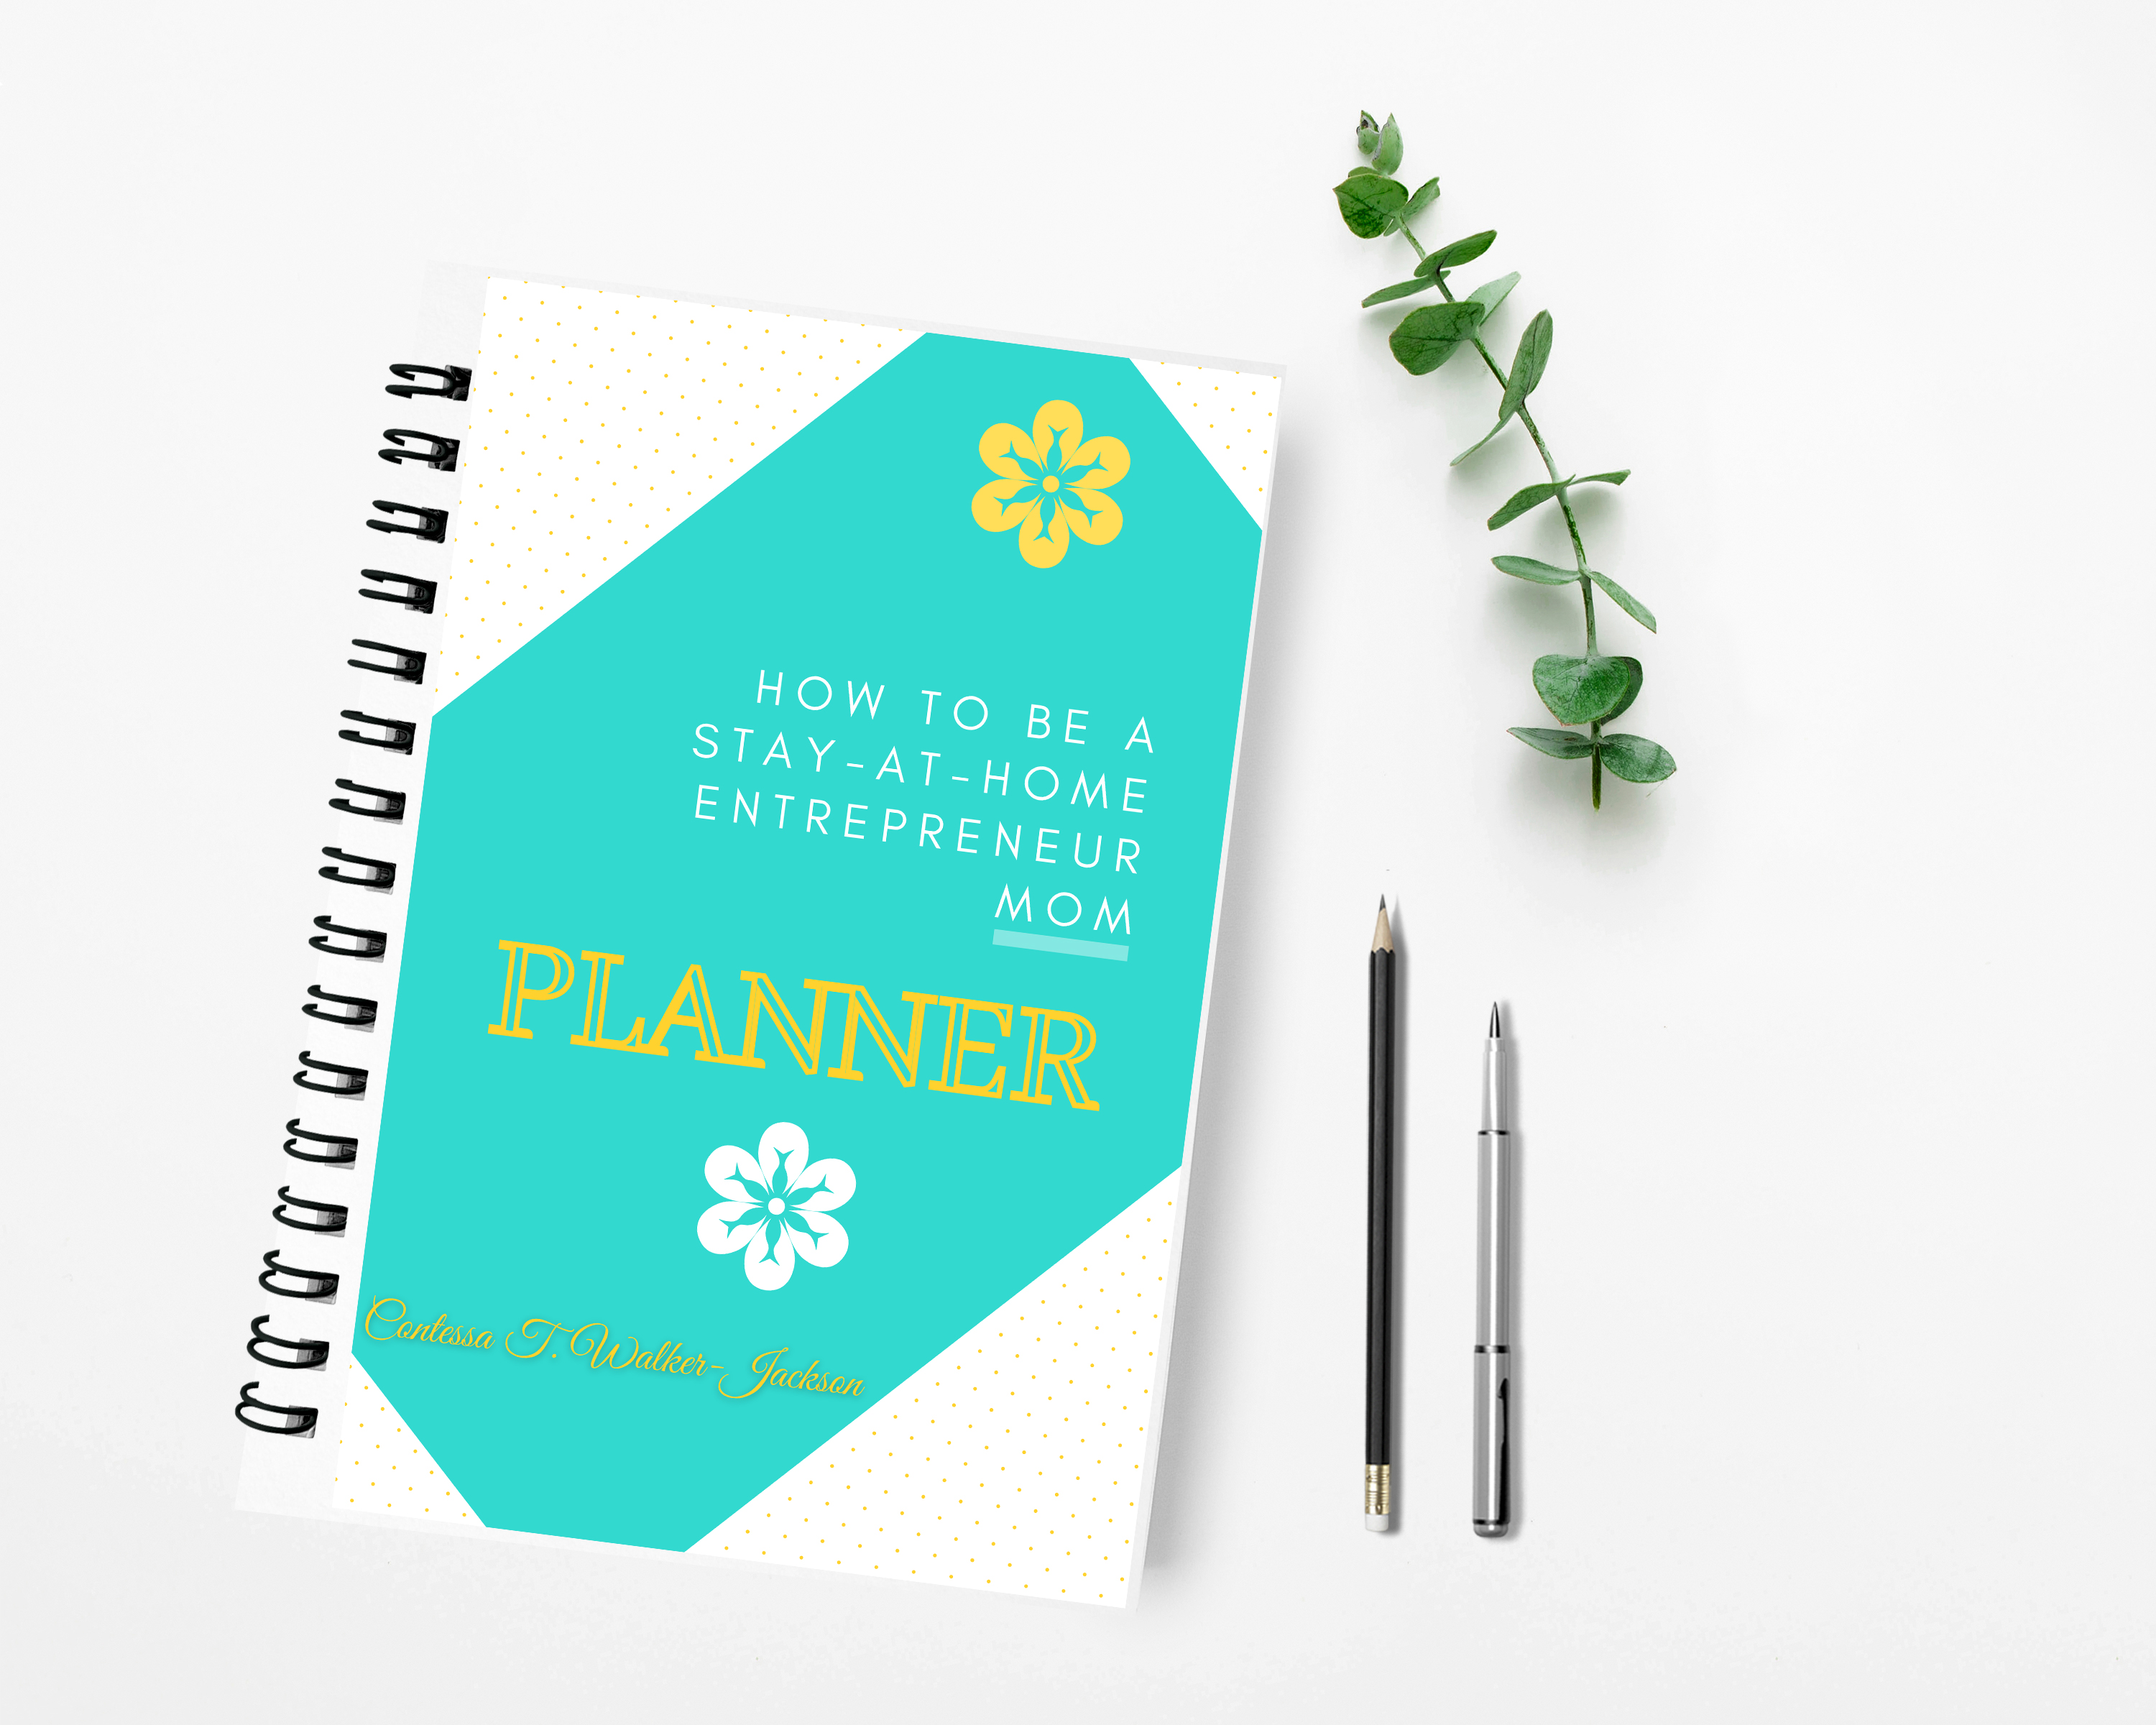 How To Be A Stay-At-Home Entrepreneur Mom Planner